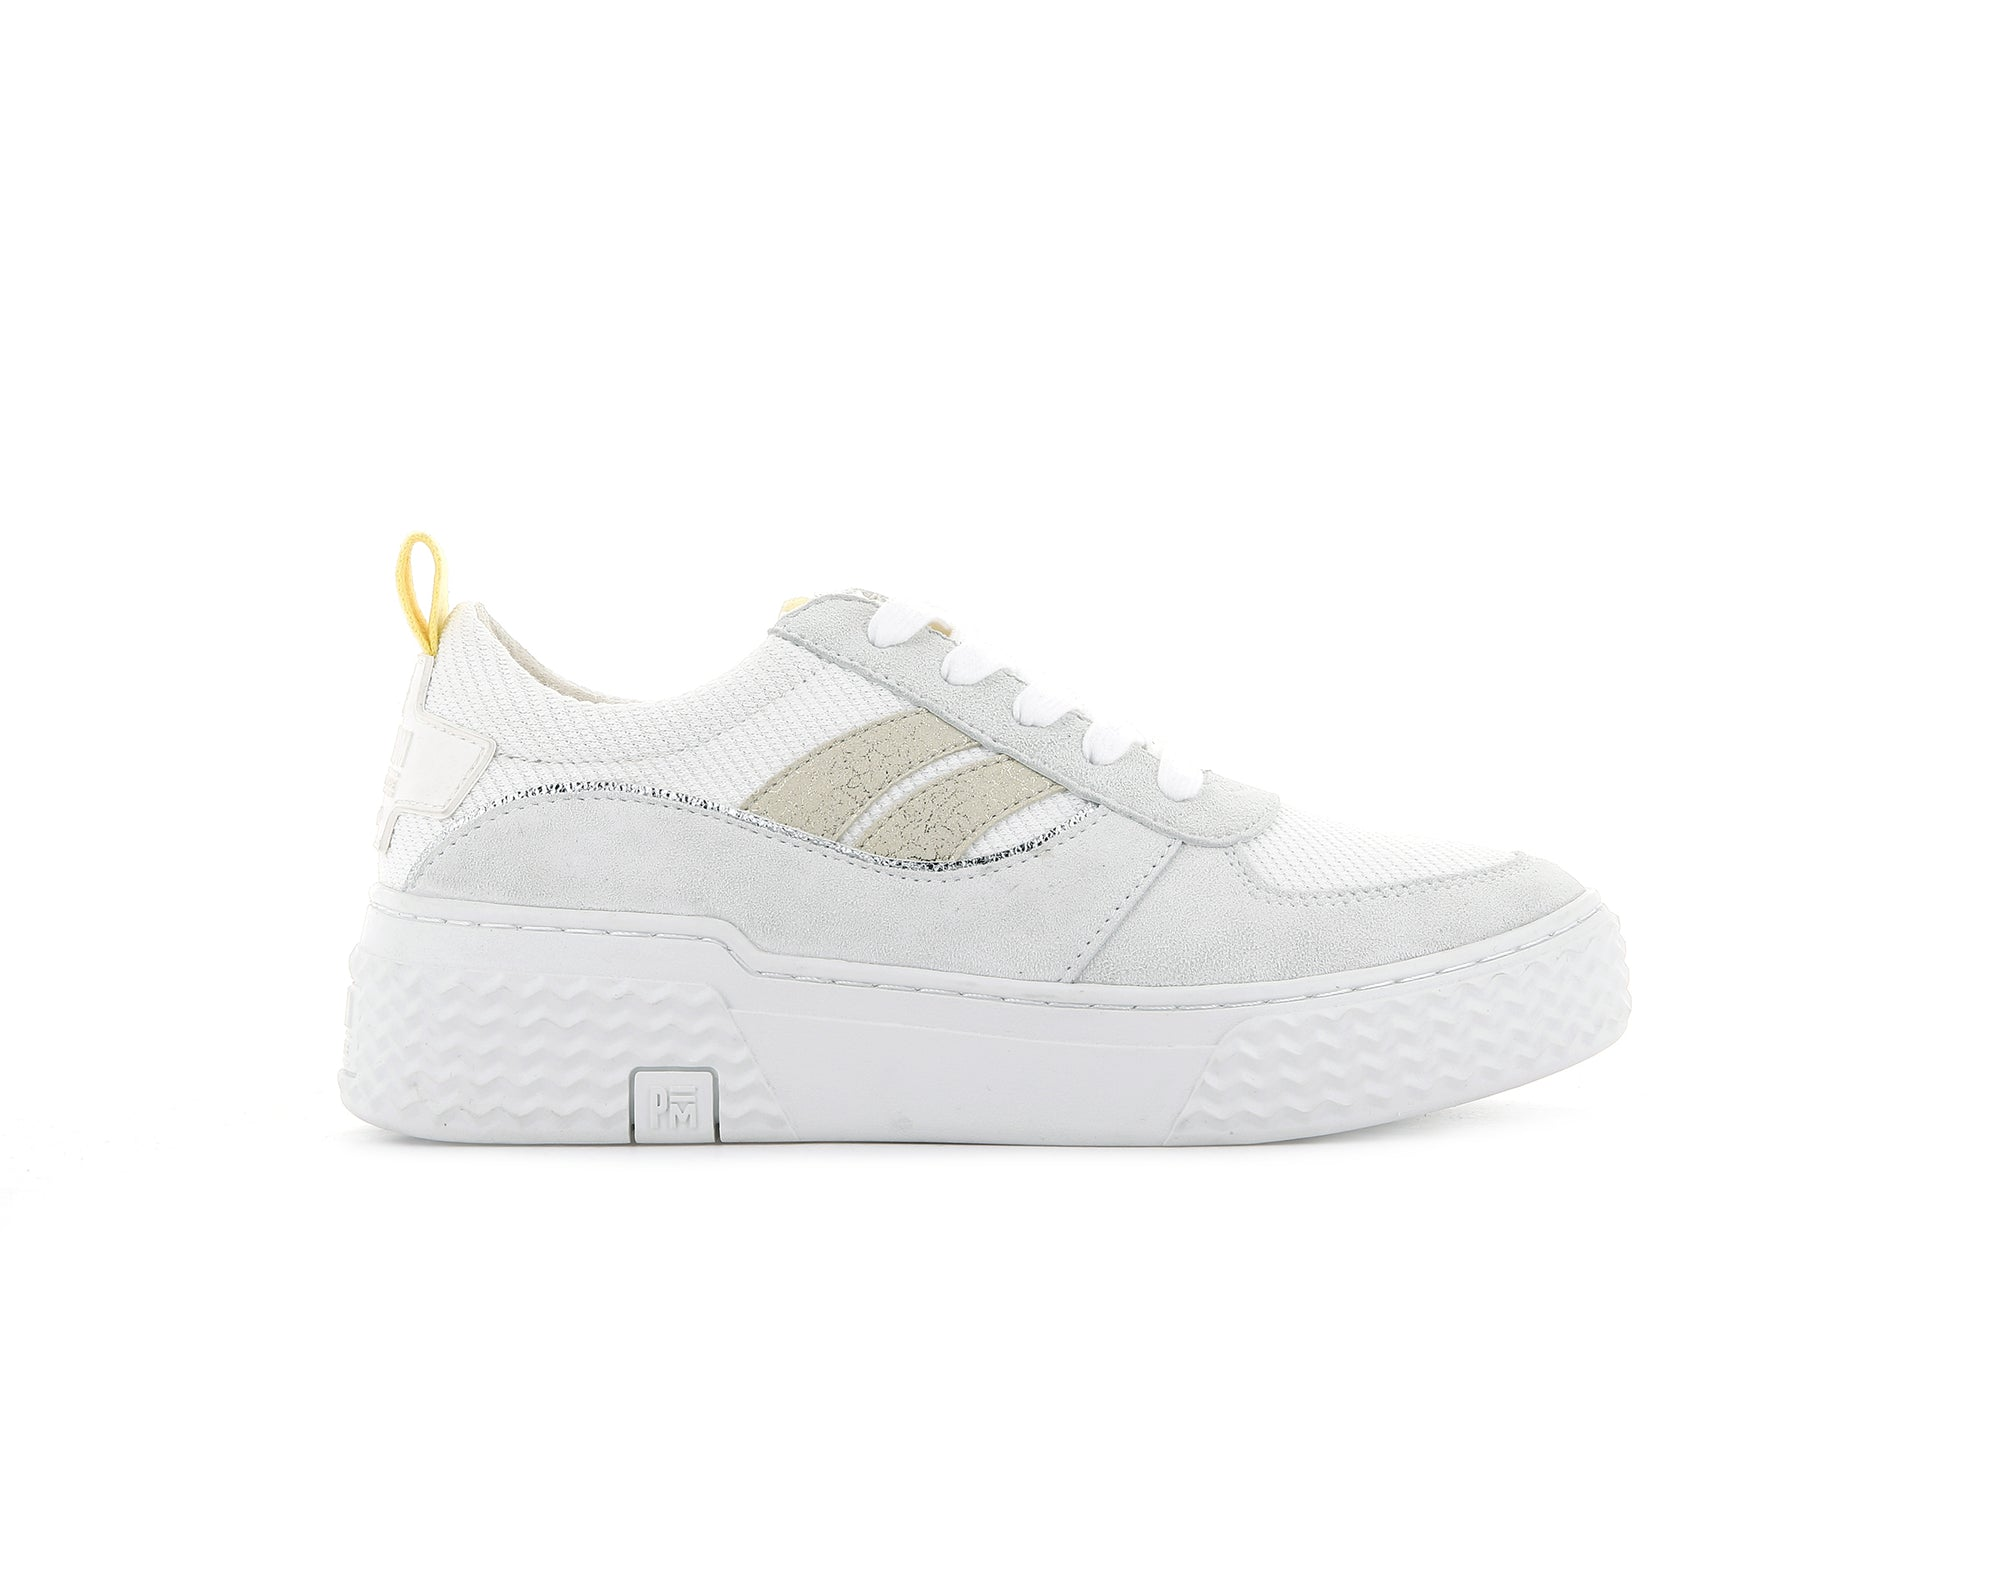 76991_V60 | Baskets femme EGO 01 SOAP | WHITE/YELLOW/BEIGE